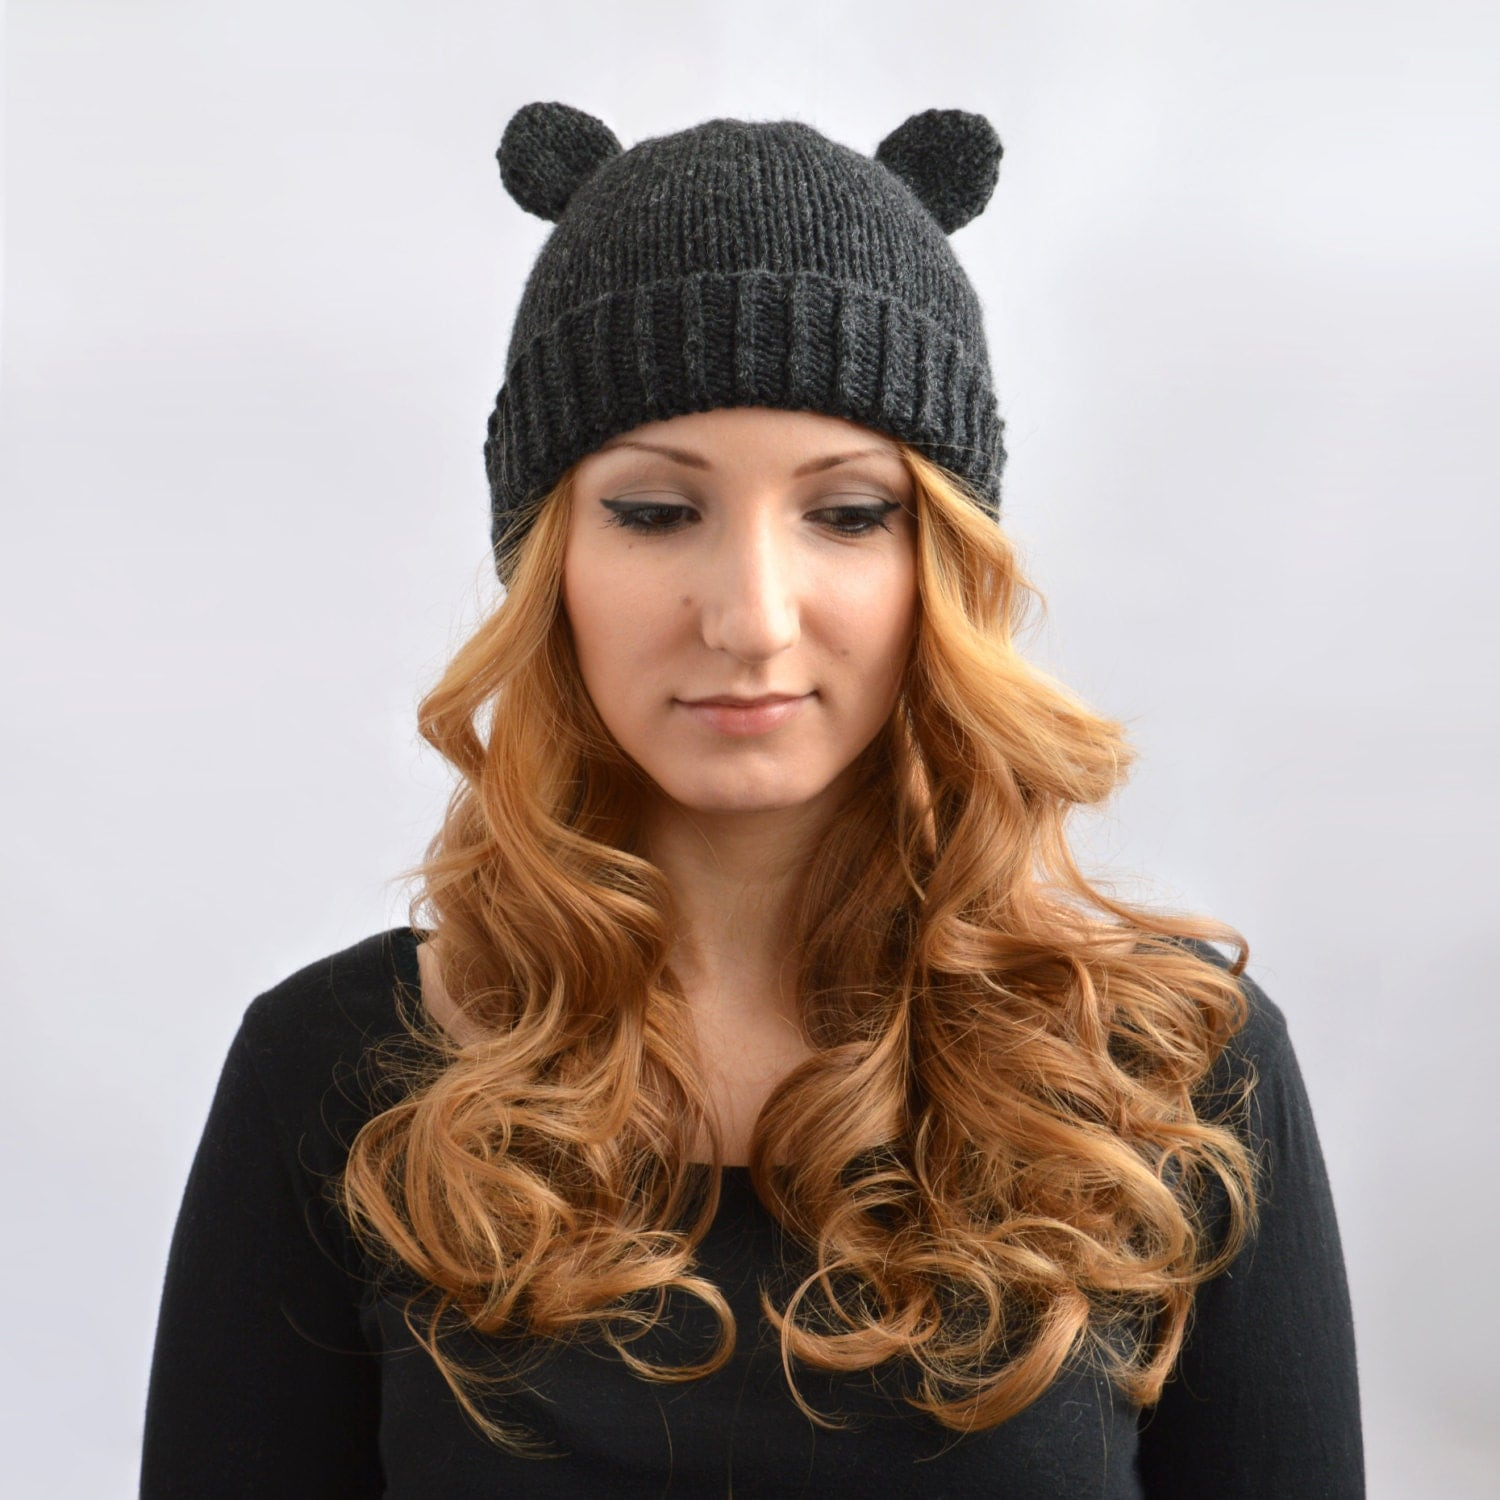 Beanie Hats for Men & Women - Watch Cap - Cold Weather Gear - by Mato & Hash - Black CA Jack Daniels Ribbed Black Gray Winter Knit Beanie Hat. Product Image. Price $ Product Title. Items sold by kumau.ml that are marked eligible on the product and checkout page with the logo ;.